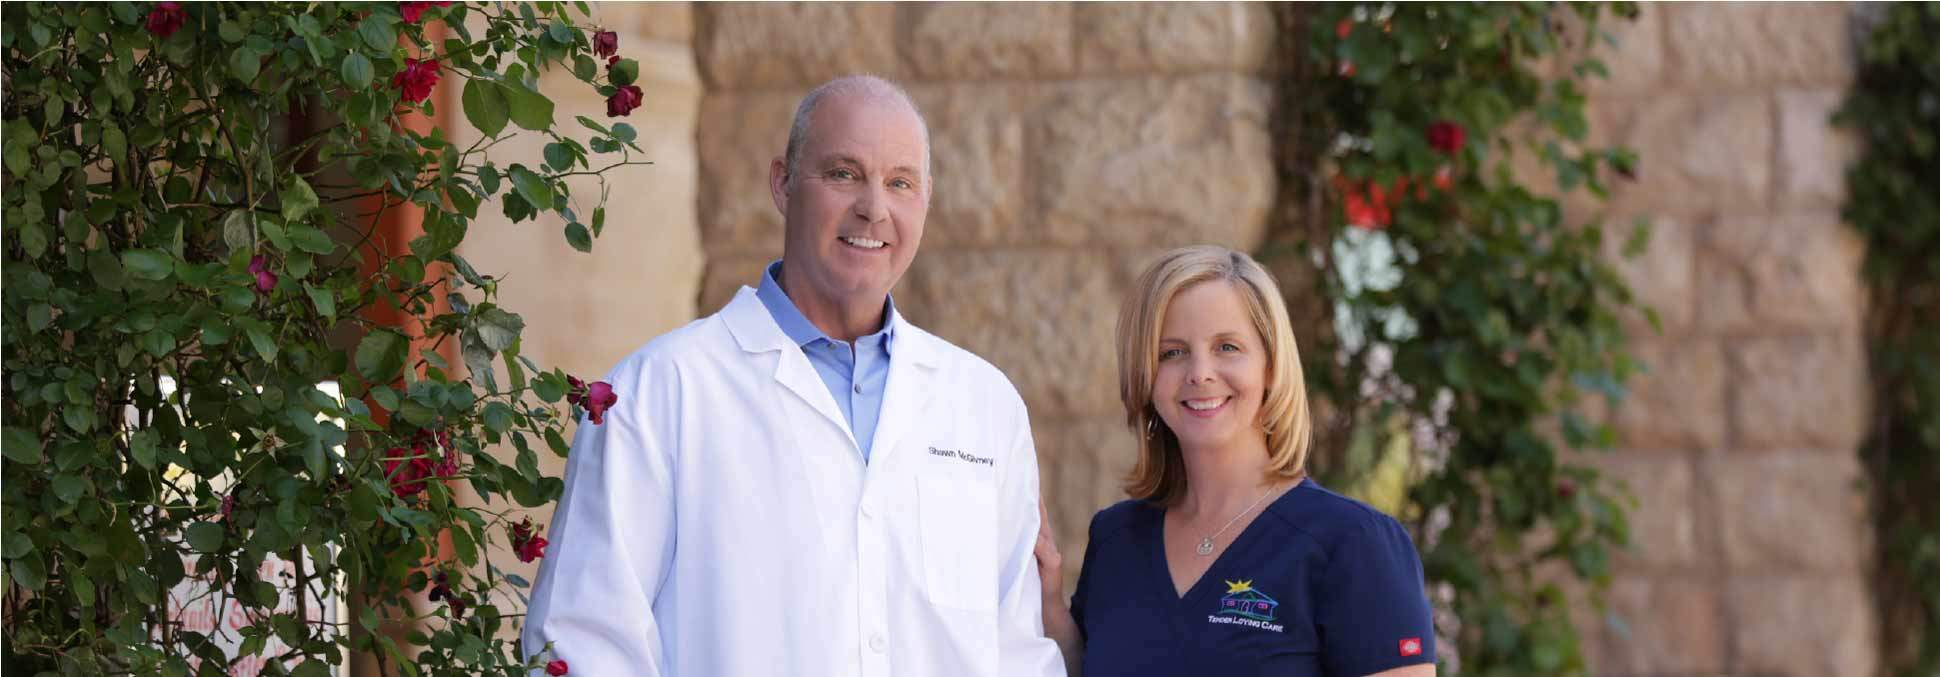 Dr Shawn McGivney and Kerry McGivney, RN